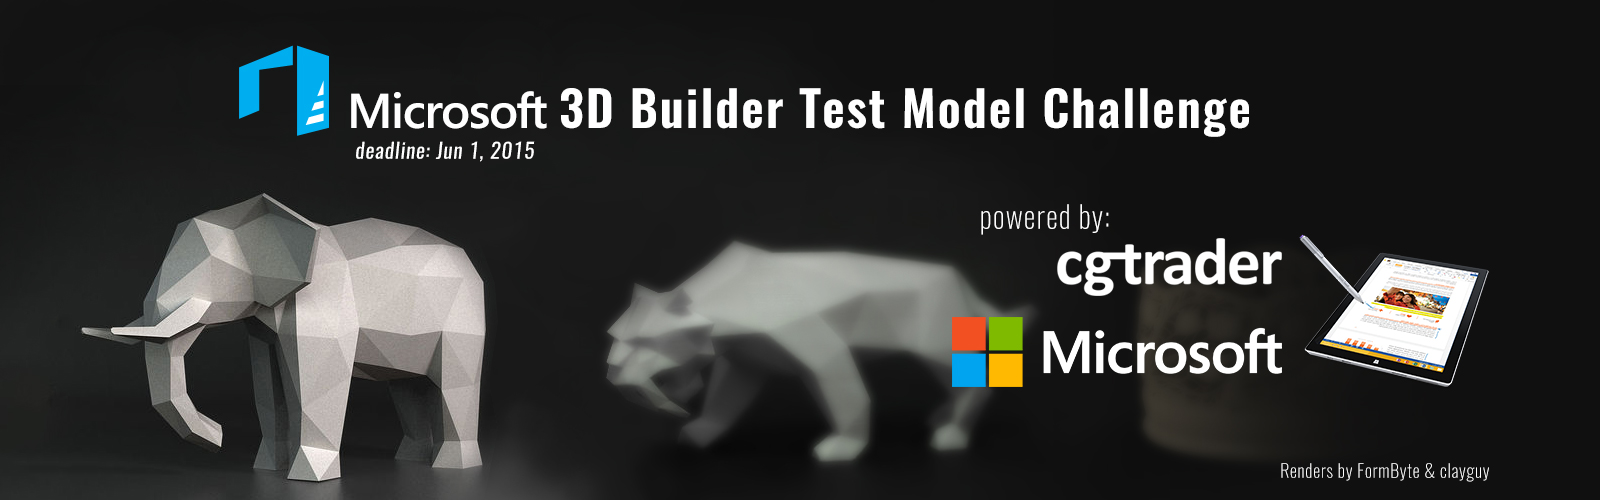 Microsoft 3D Builder Test Model Challenge